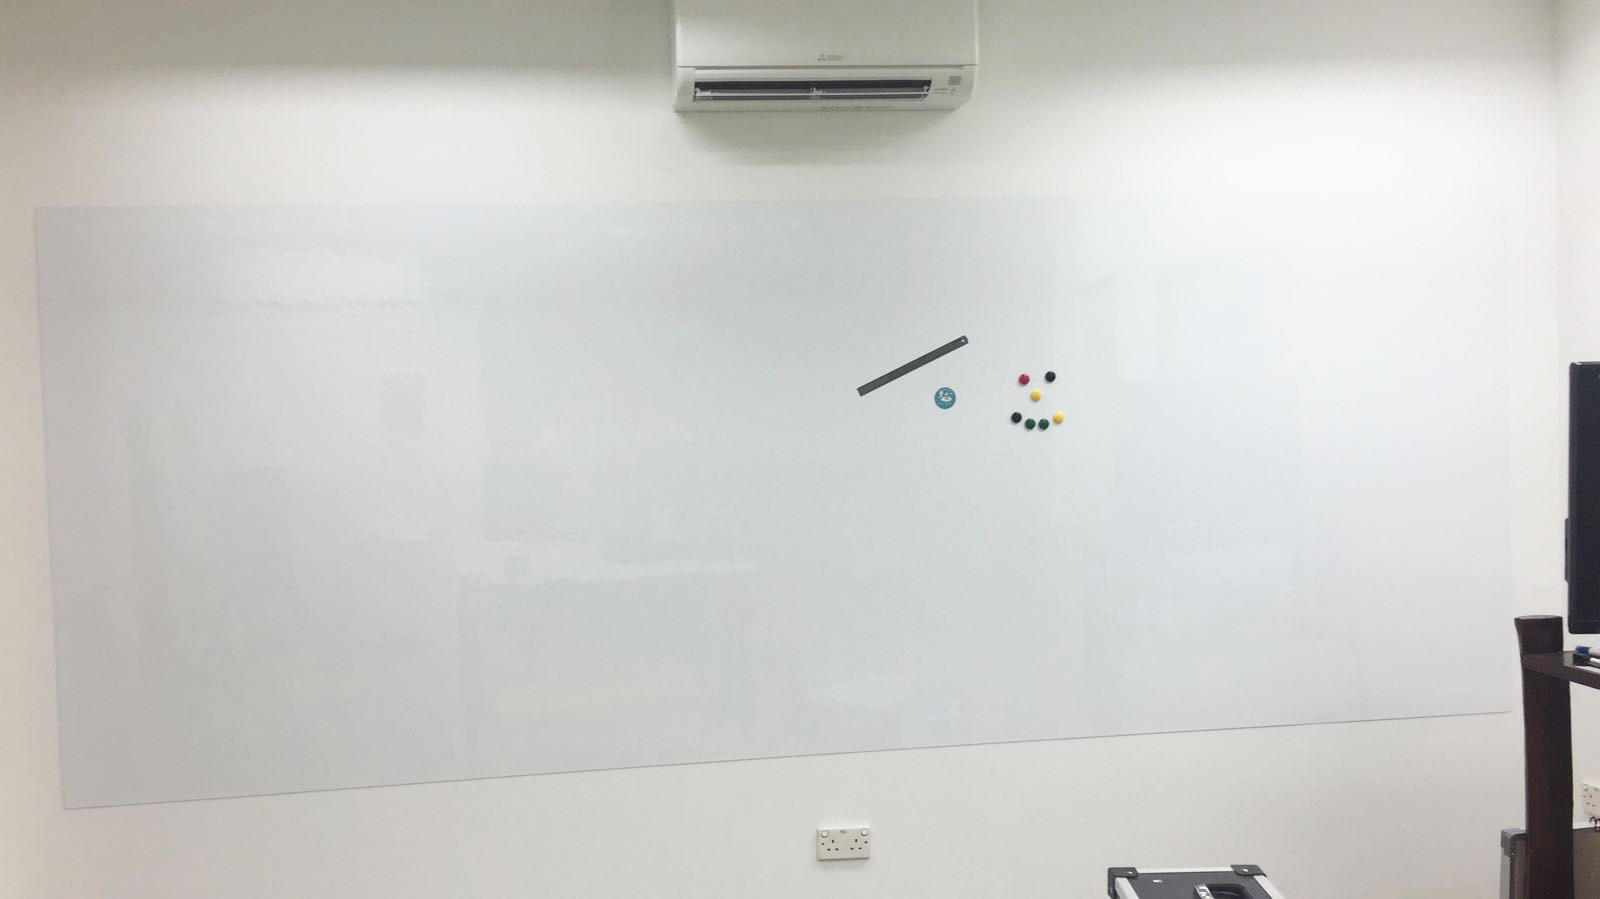 Whiteboards Magnetic Whiteboards Dry Erase Singapore